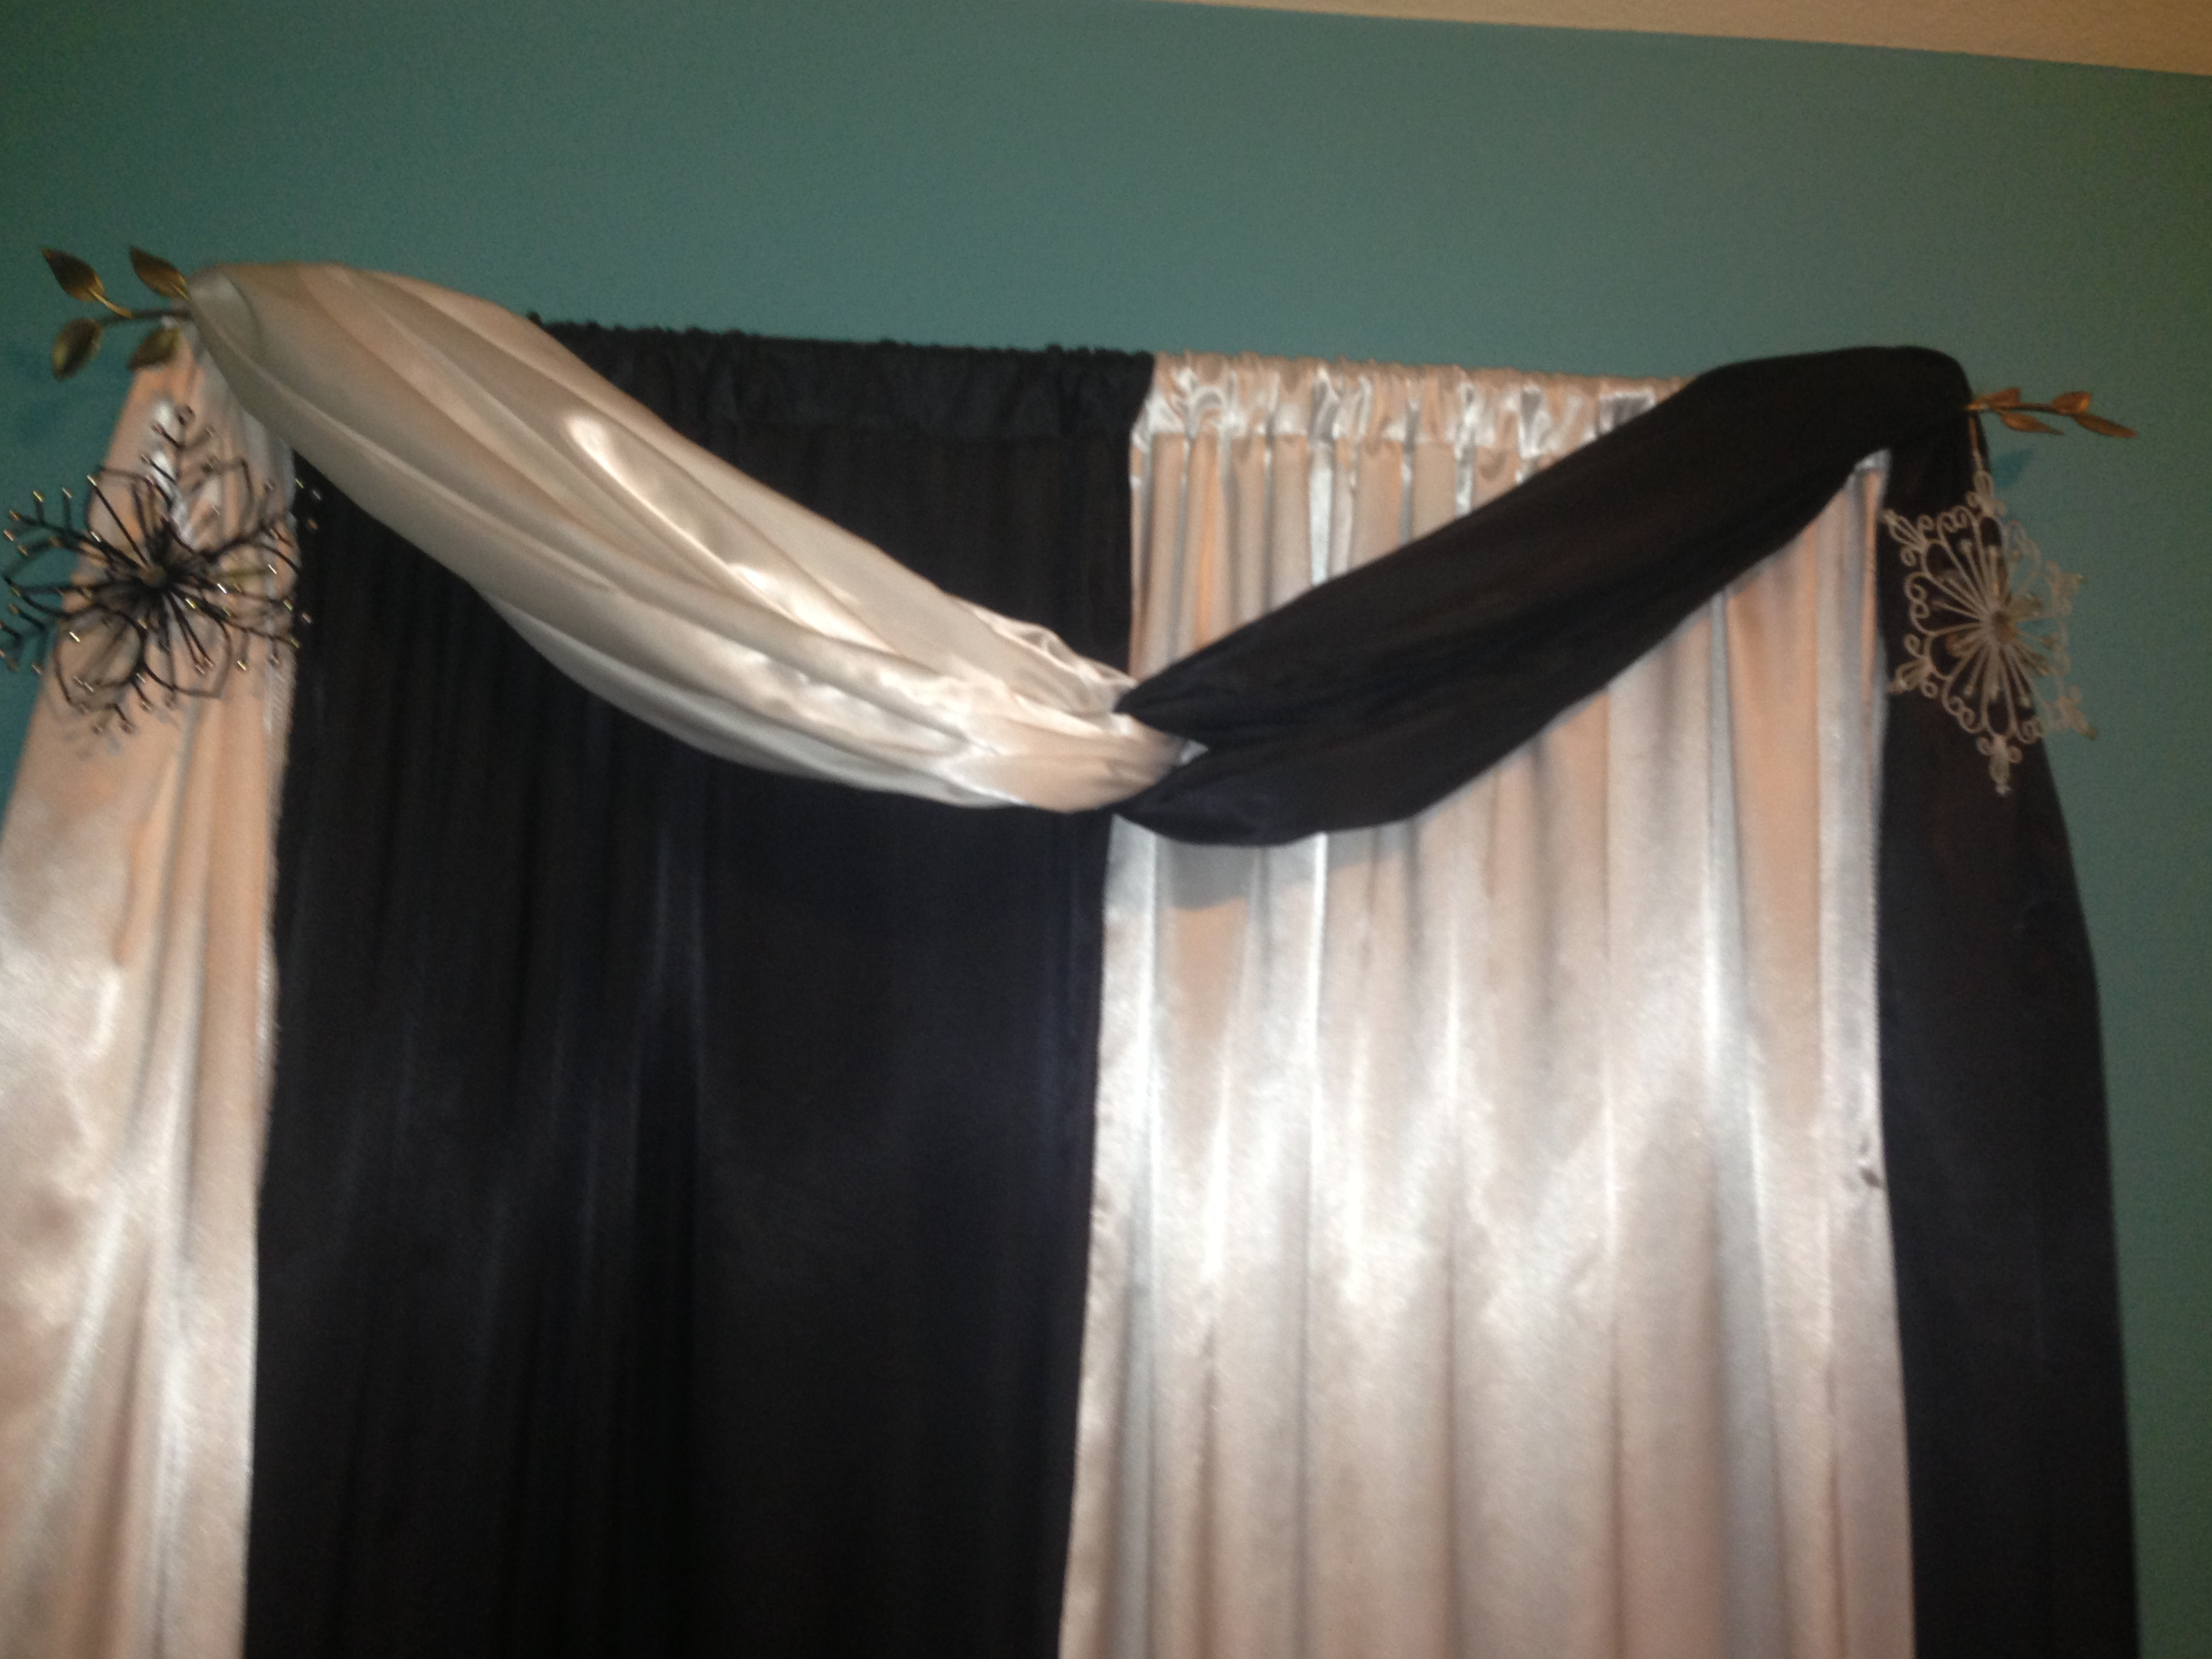 Draping Curtains How To Drape Curtains Over Rods My Web Value